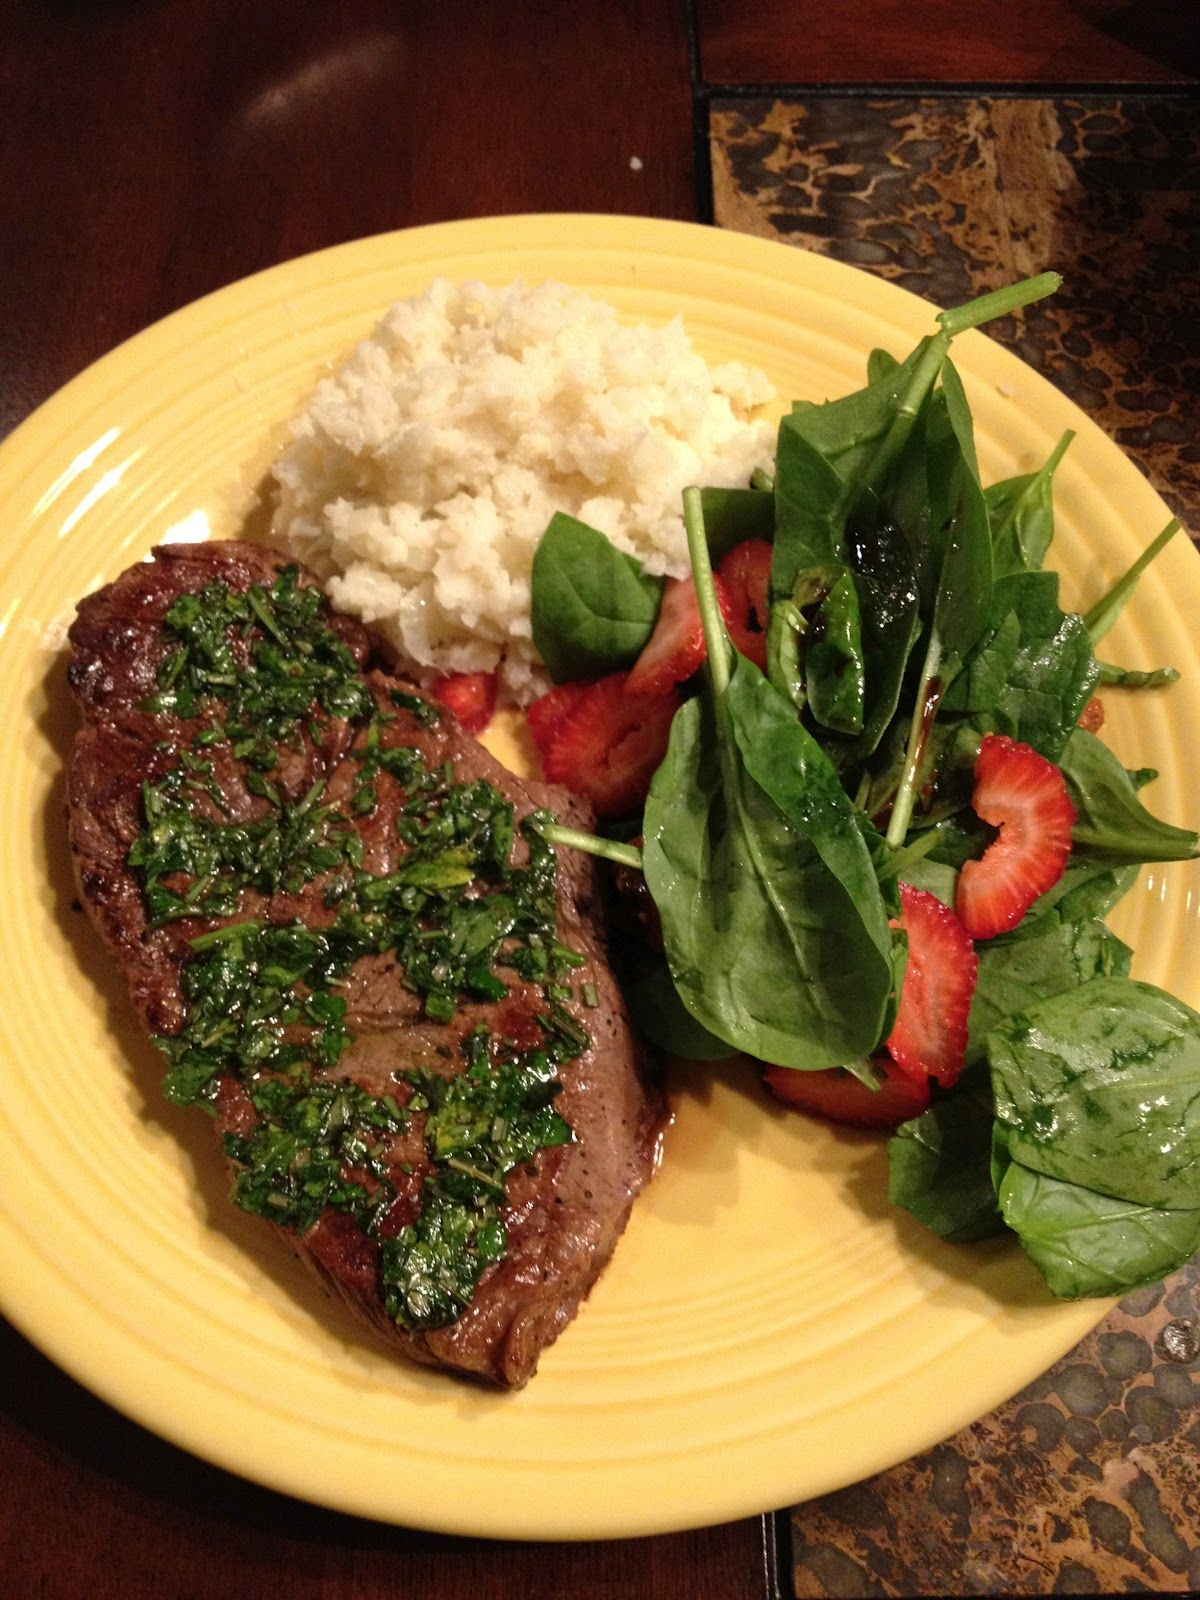 Healthy Steak Dinner Cant Wait For My Amazing Girlfriend To Make This During The Summer